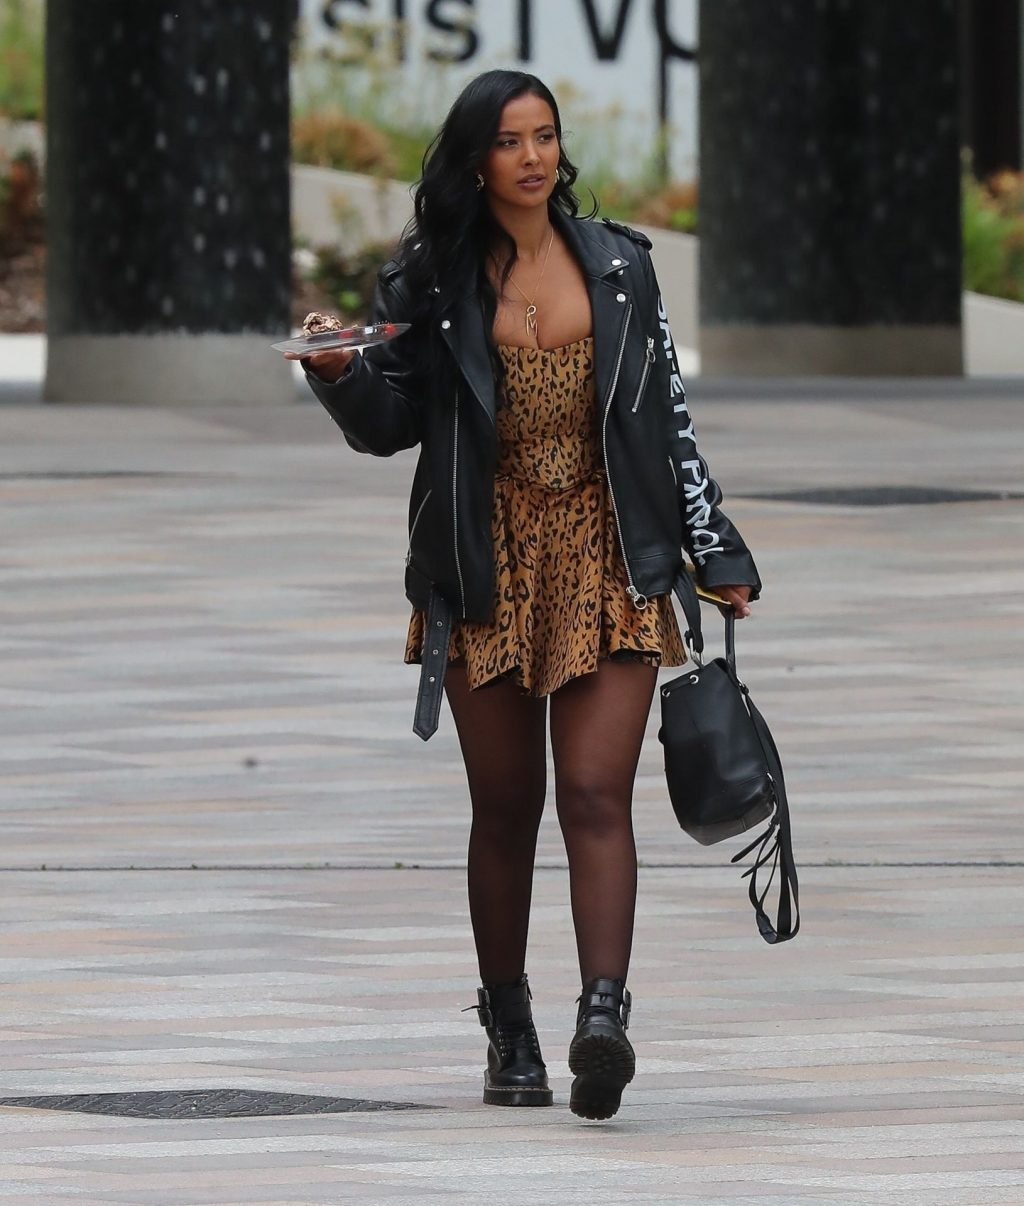 Maya Jama Shows Off Her Cleavage in London (27 Photos)